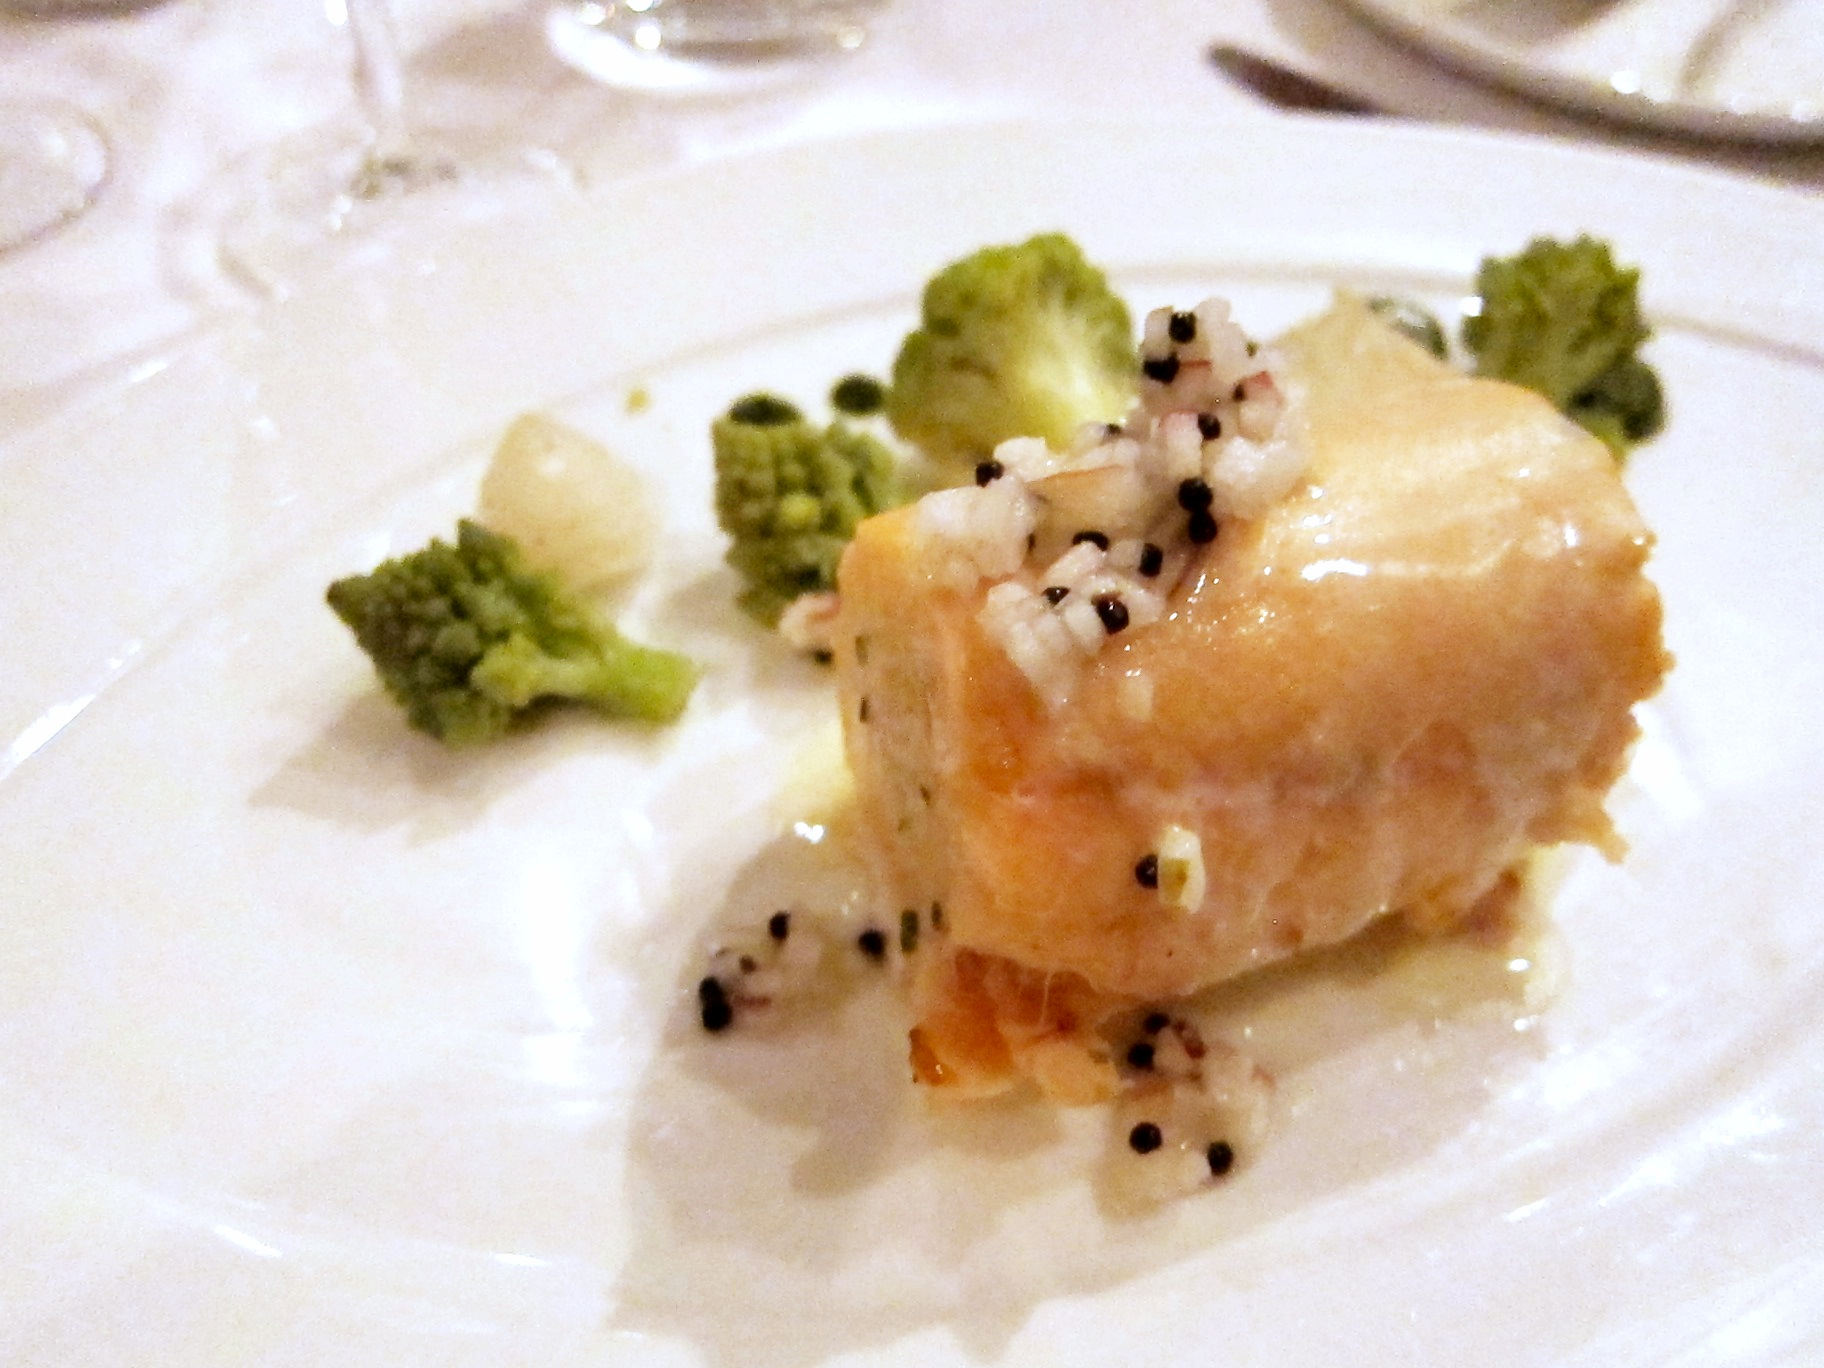 Main: Confit Salmon Medallion with Apple and Mustard Dressing